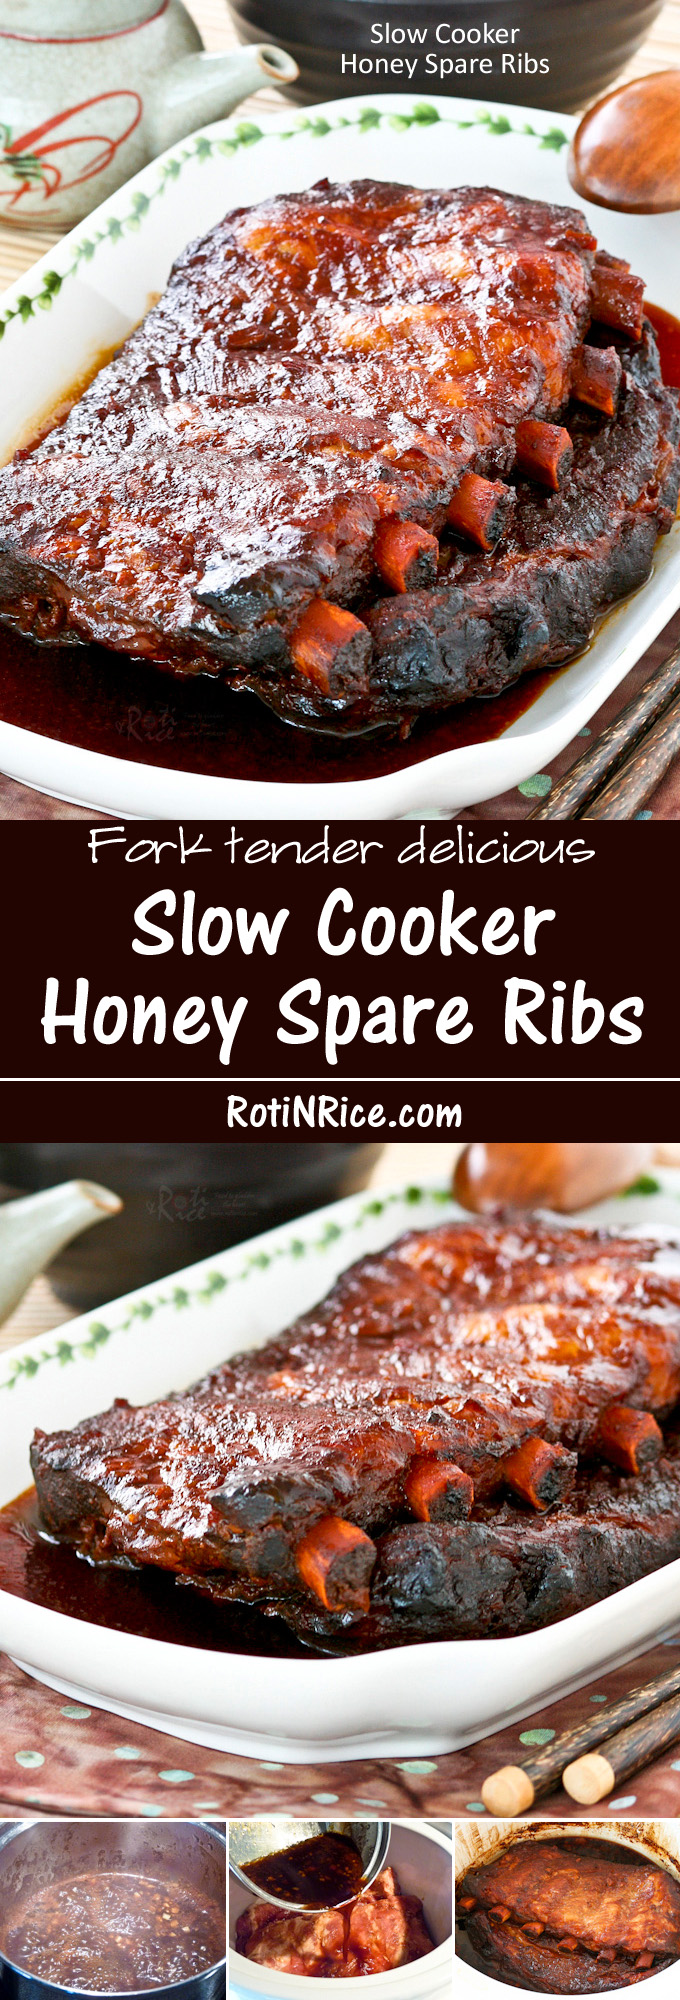 Treat your family to this Slow Cooker Honey Spare Ribs. It is juicy, flavorful, and fork tender delicious. They will thank you for it. | RotiNRice.com